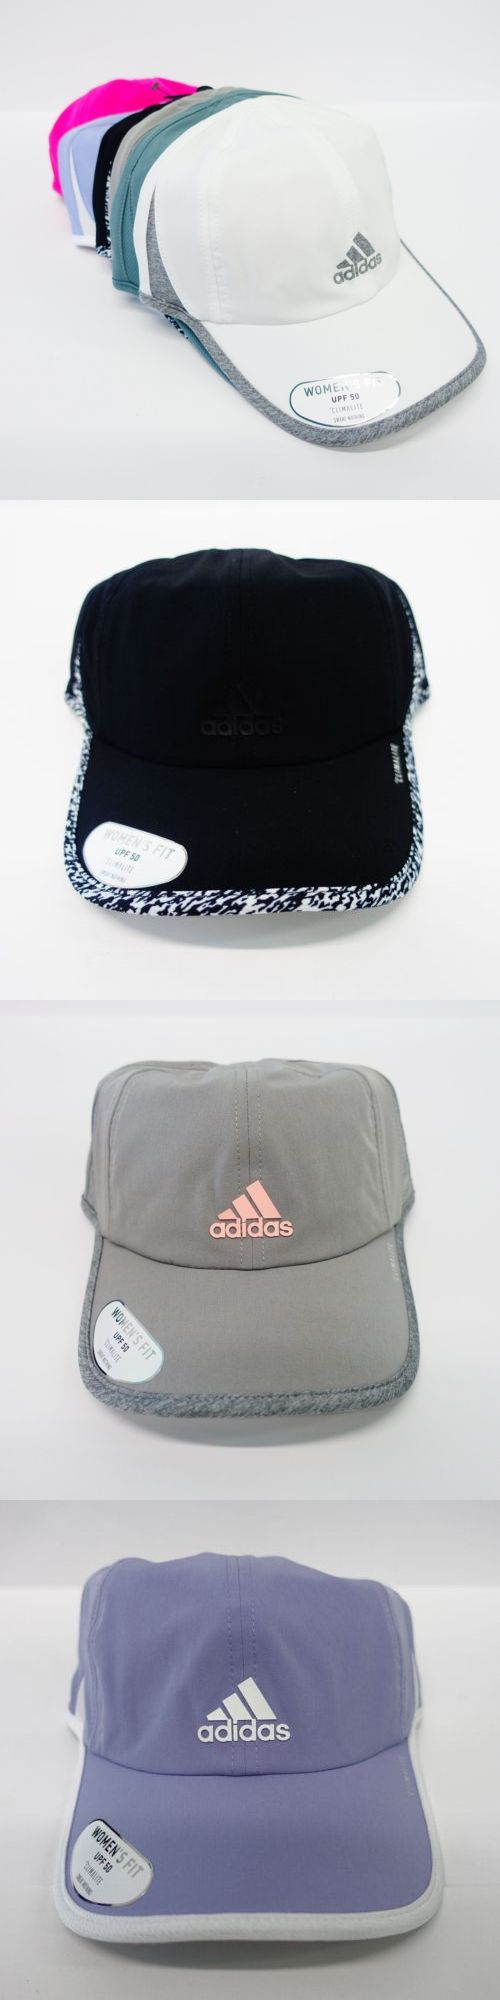 d780035f625da Clothing Shoes and Accessories 62229  Adidas Tennis Women S Superlite  Adjustable Cap -  BUY IT NOW ONLY   22 on  eBay  clothing  shoes   accessories  adidas ...